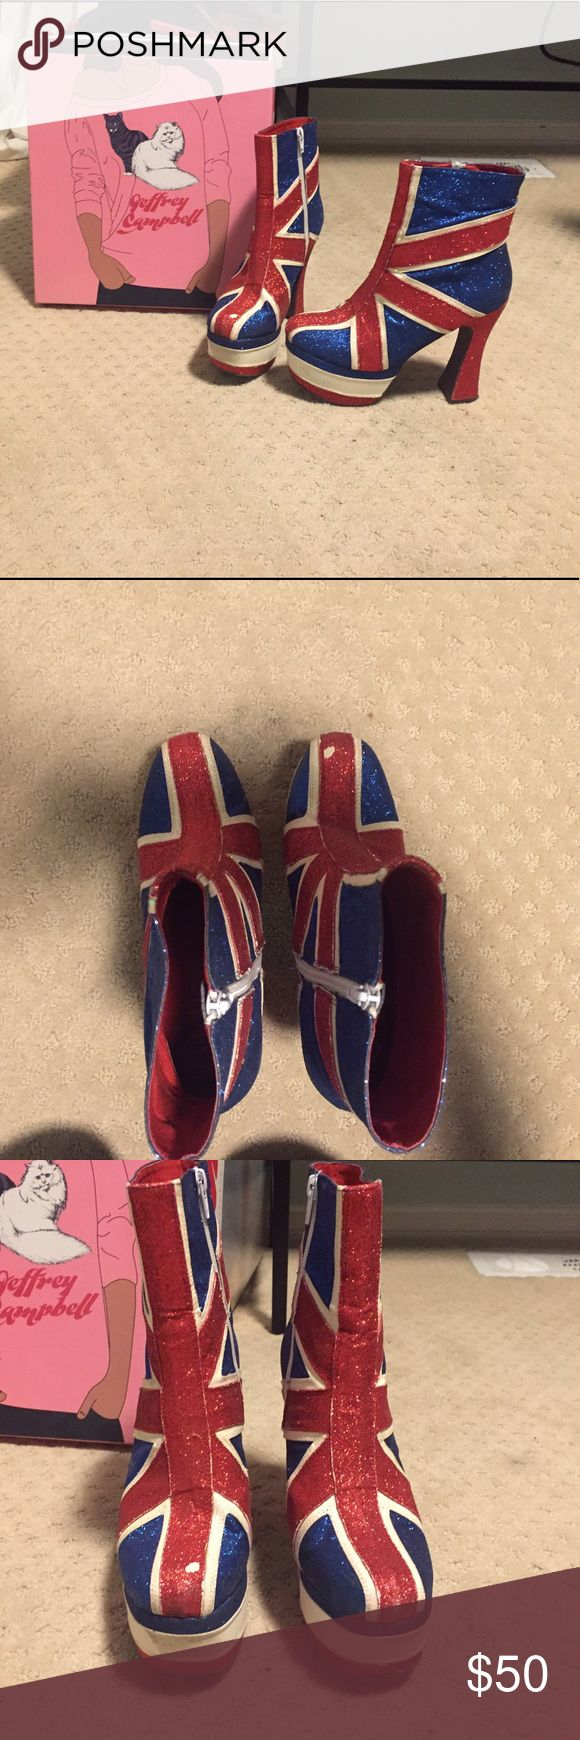 BOGO Union Jack spice girl boots You will be the life of the party in these (surprisingly comfortable) head turners. Perfect for pride and Halloween. Small chipping of glitter as shown in pics. Comes with box. Jeffrey Campbell Shoes Platforms